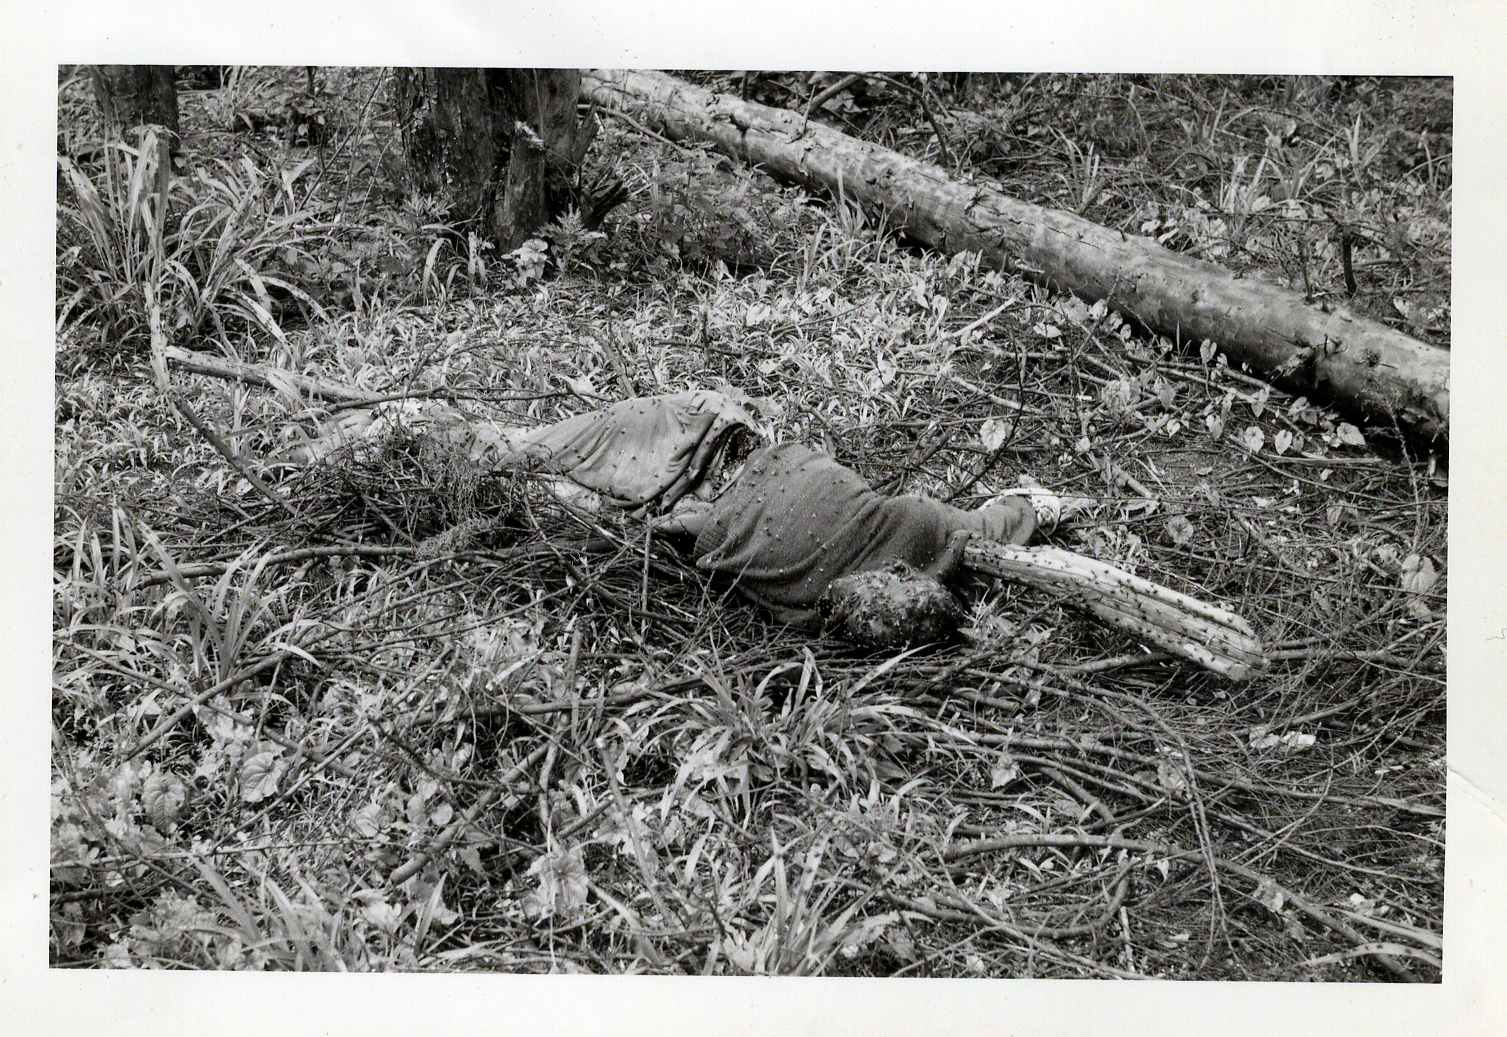 A killed Katangese, left in the terrain.